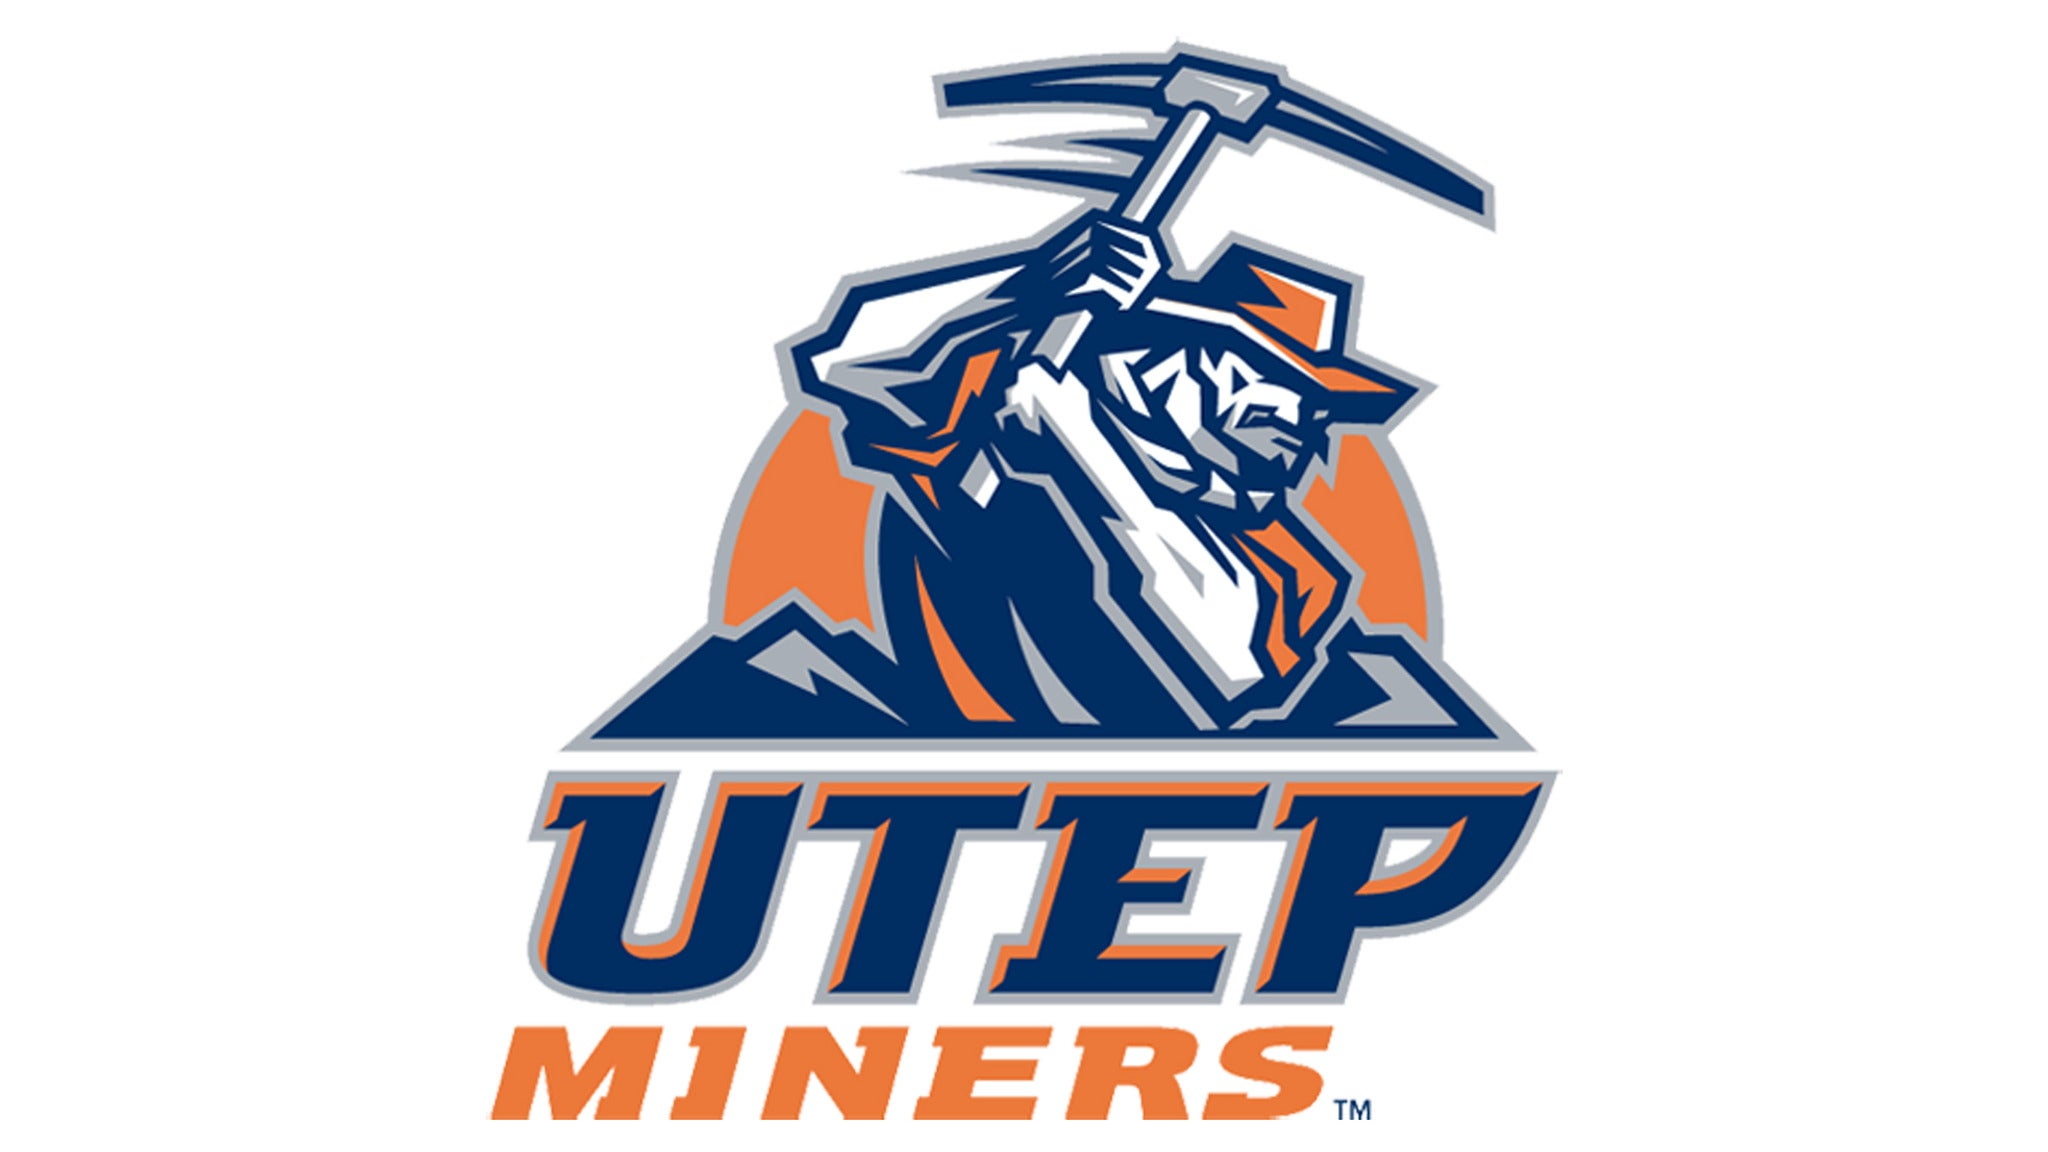 Game 1: UTEP Miners v. Houston Baptist